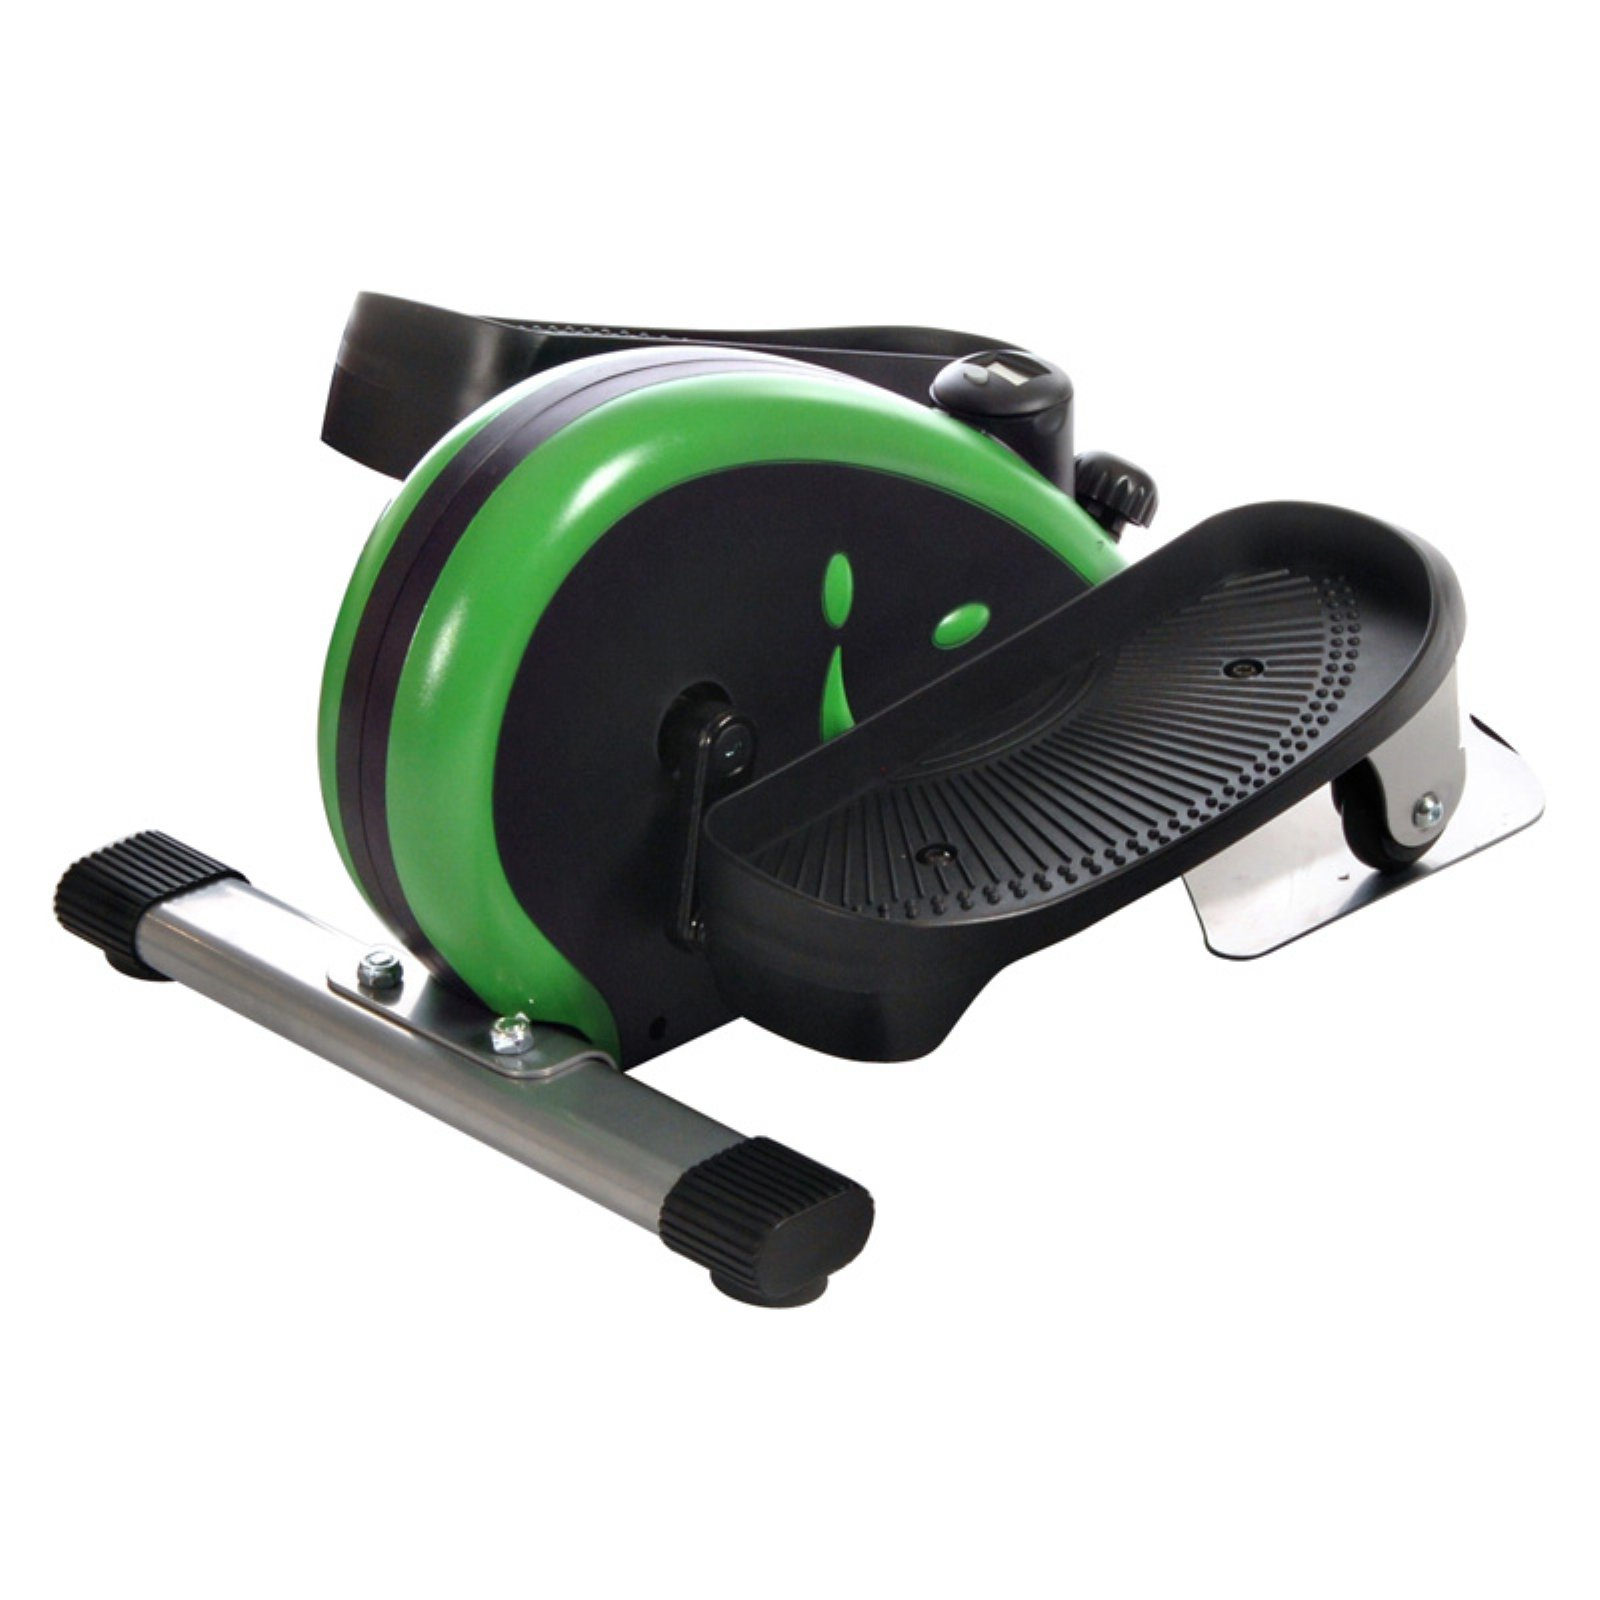 Stamina InMotion Elliptical, Green - lightweight for use at home or the office